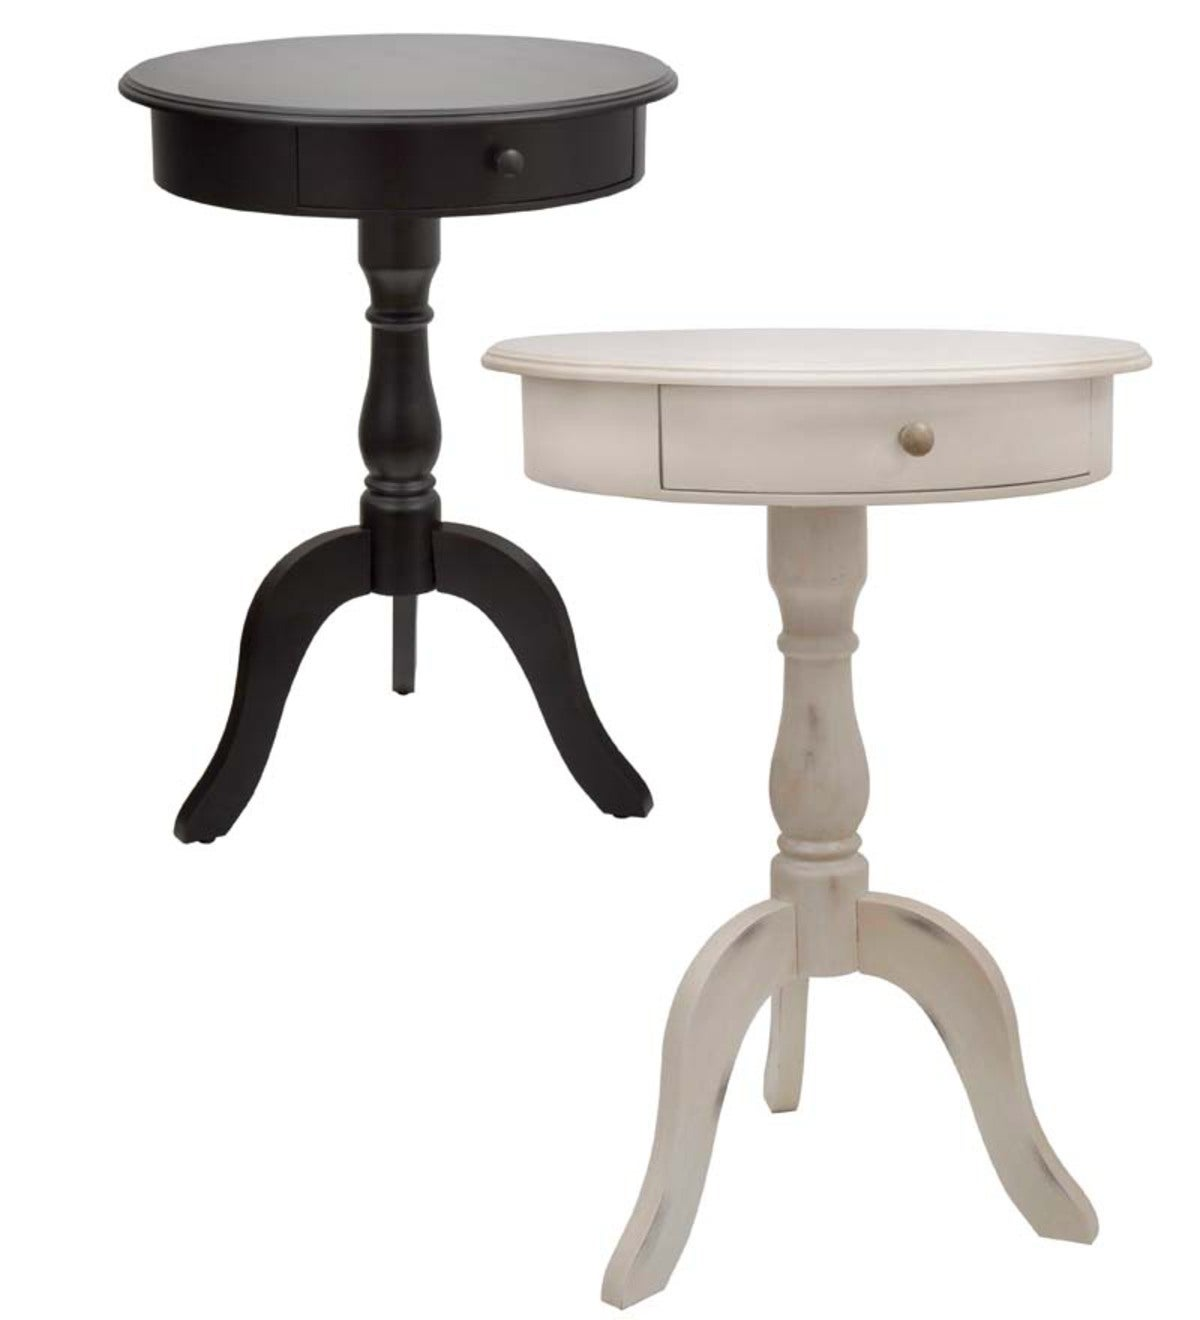 Round Pedestal Accent/Side Table with Drawer - Black